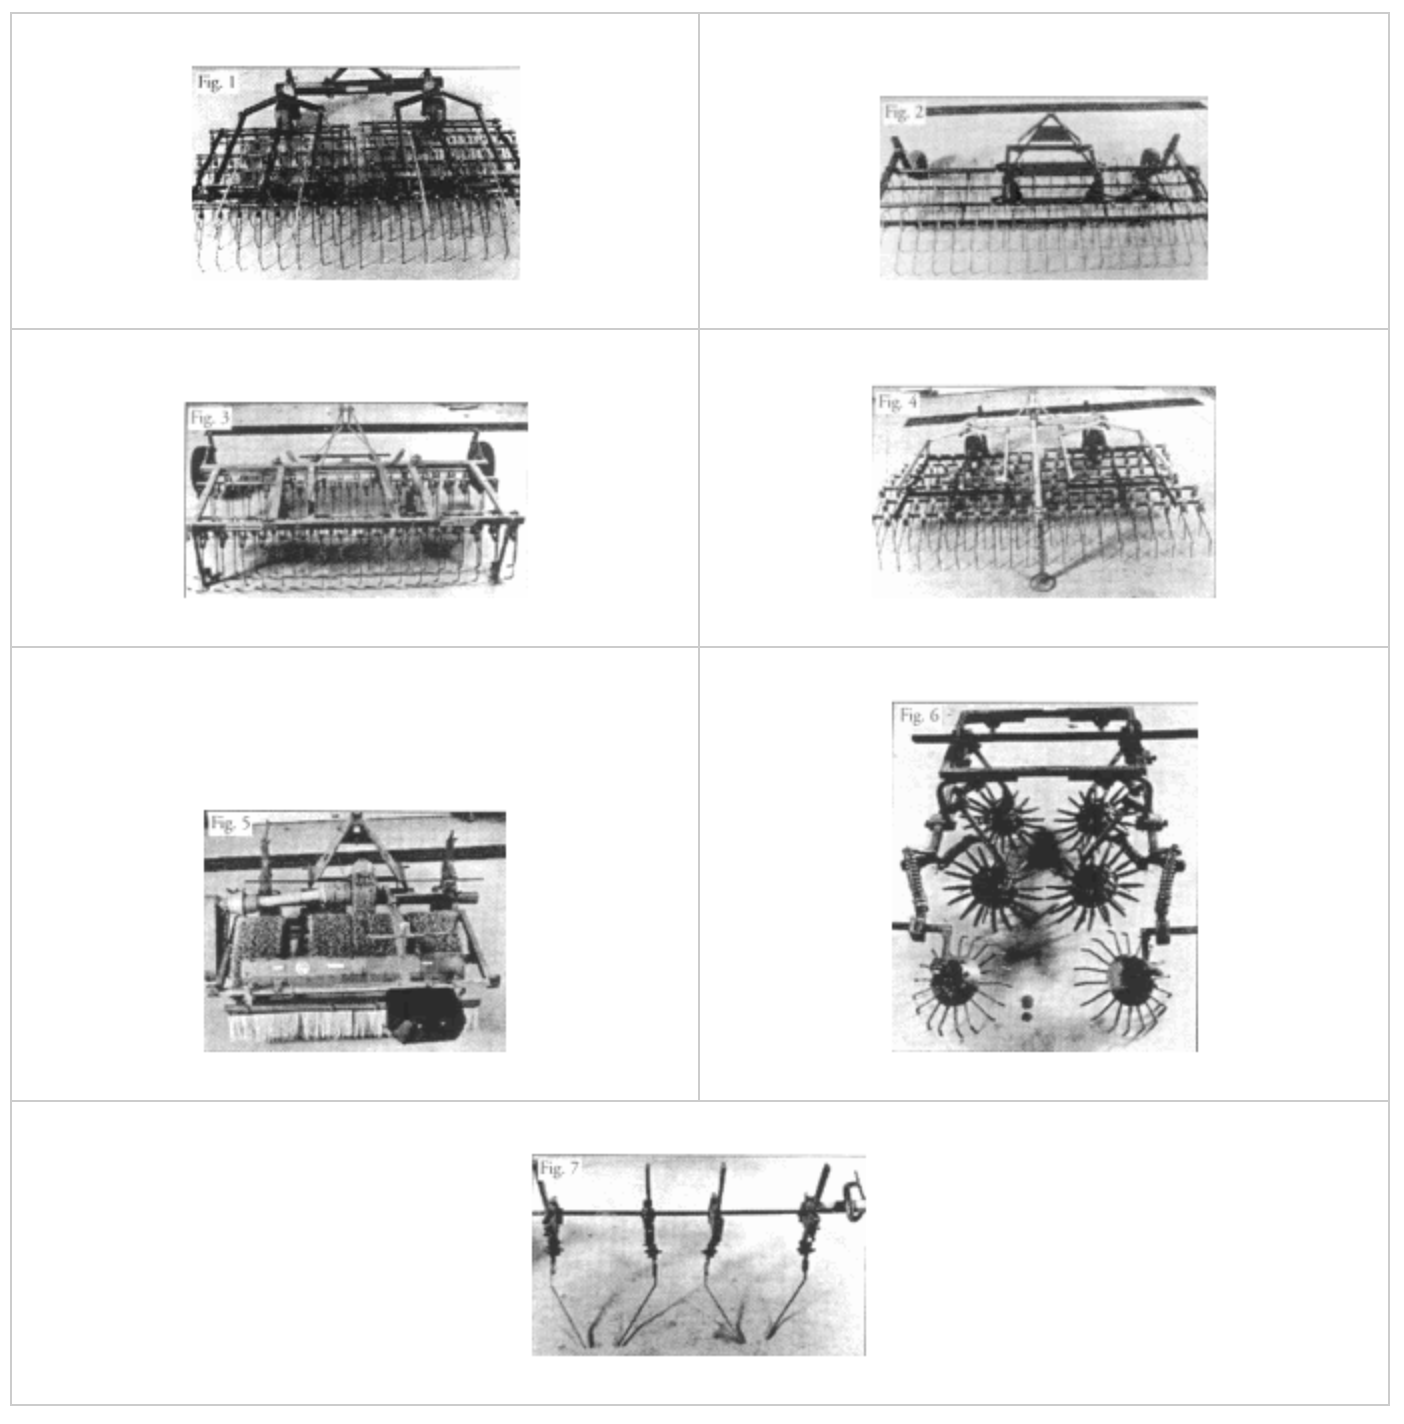 vegetable crop cultivation tools